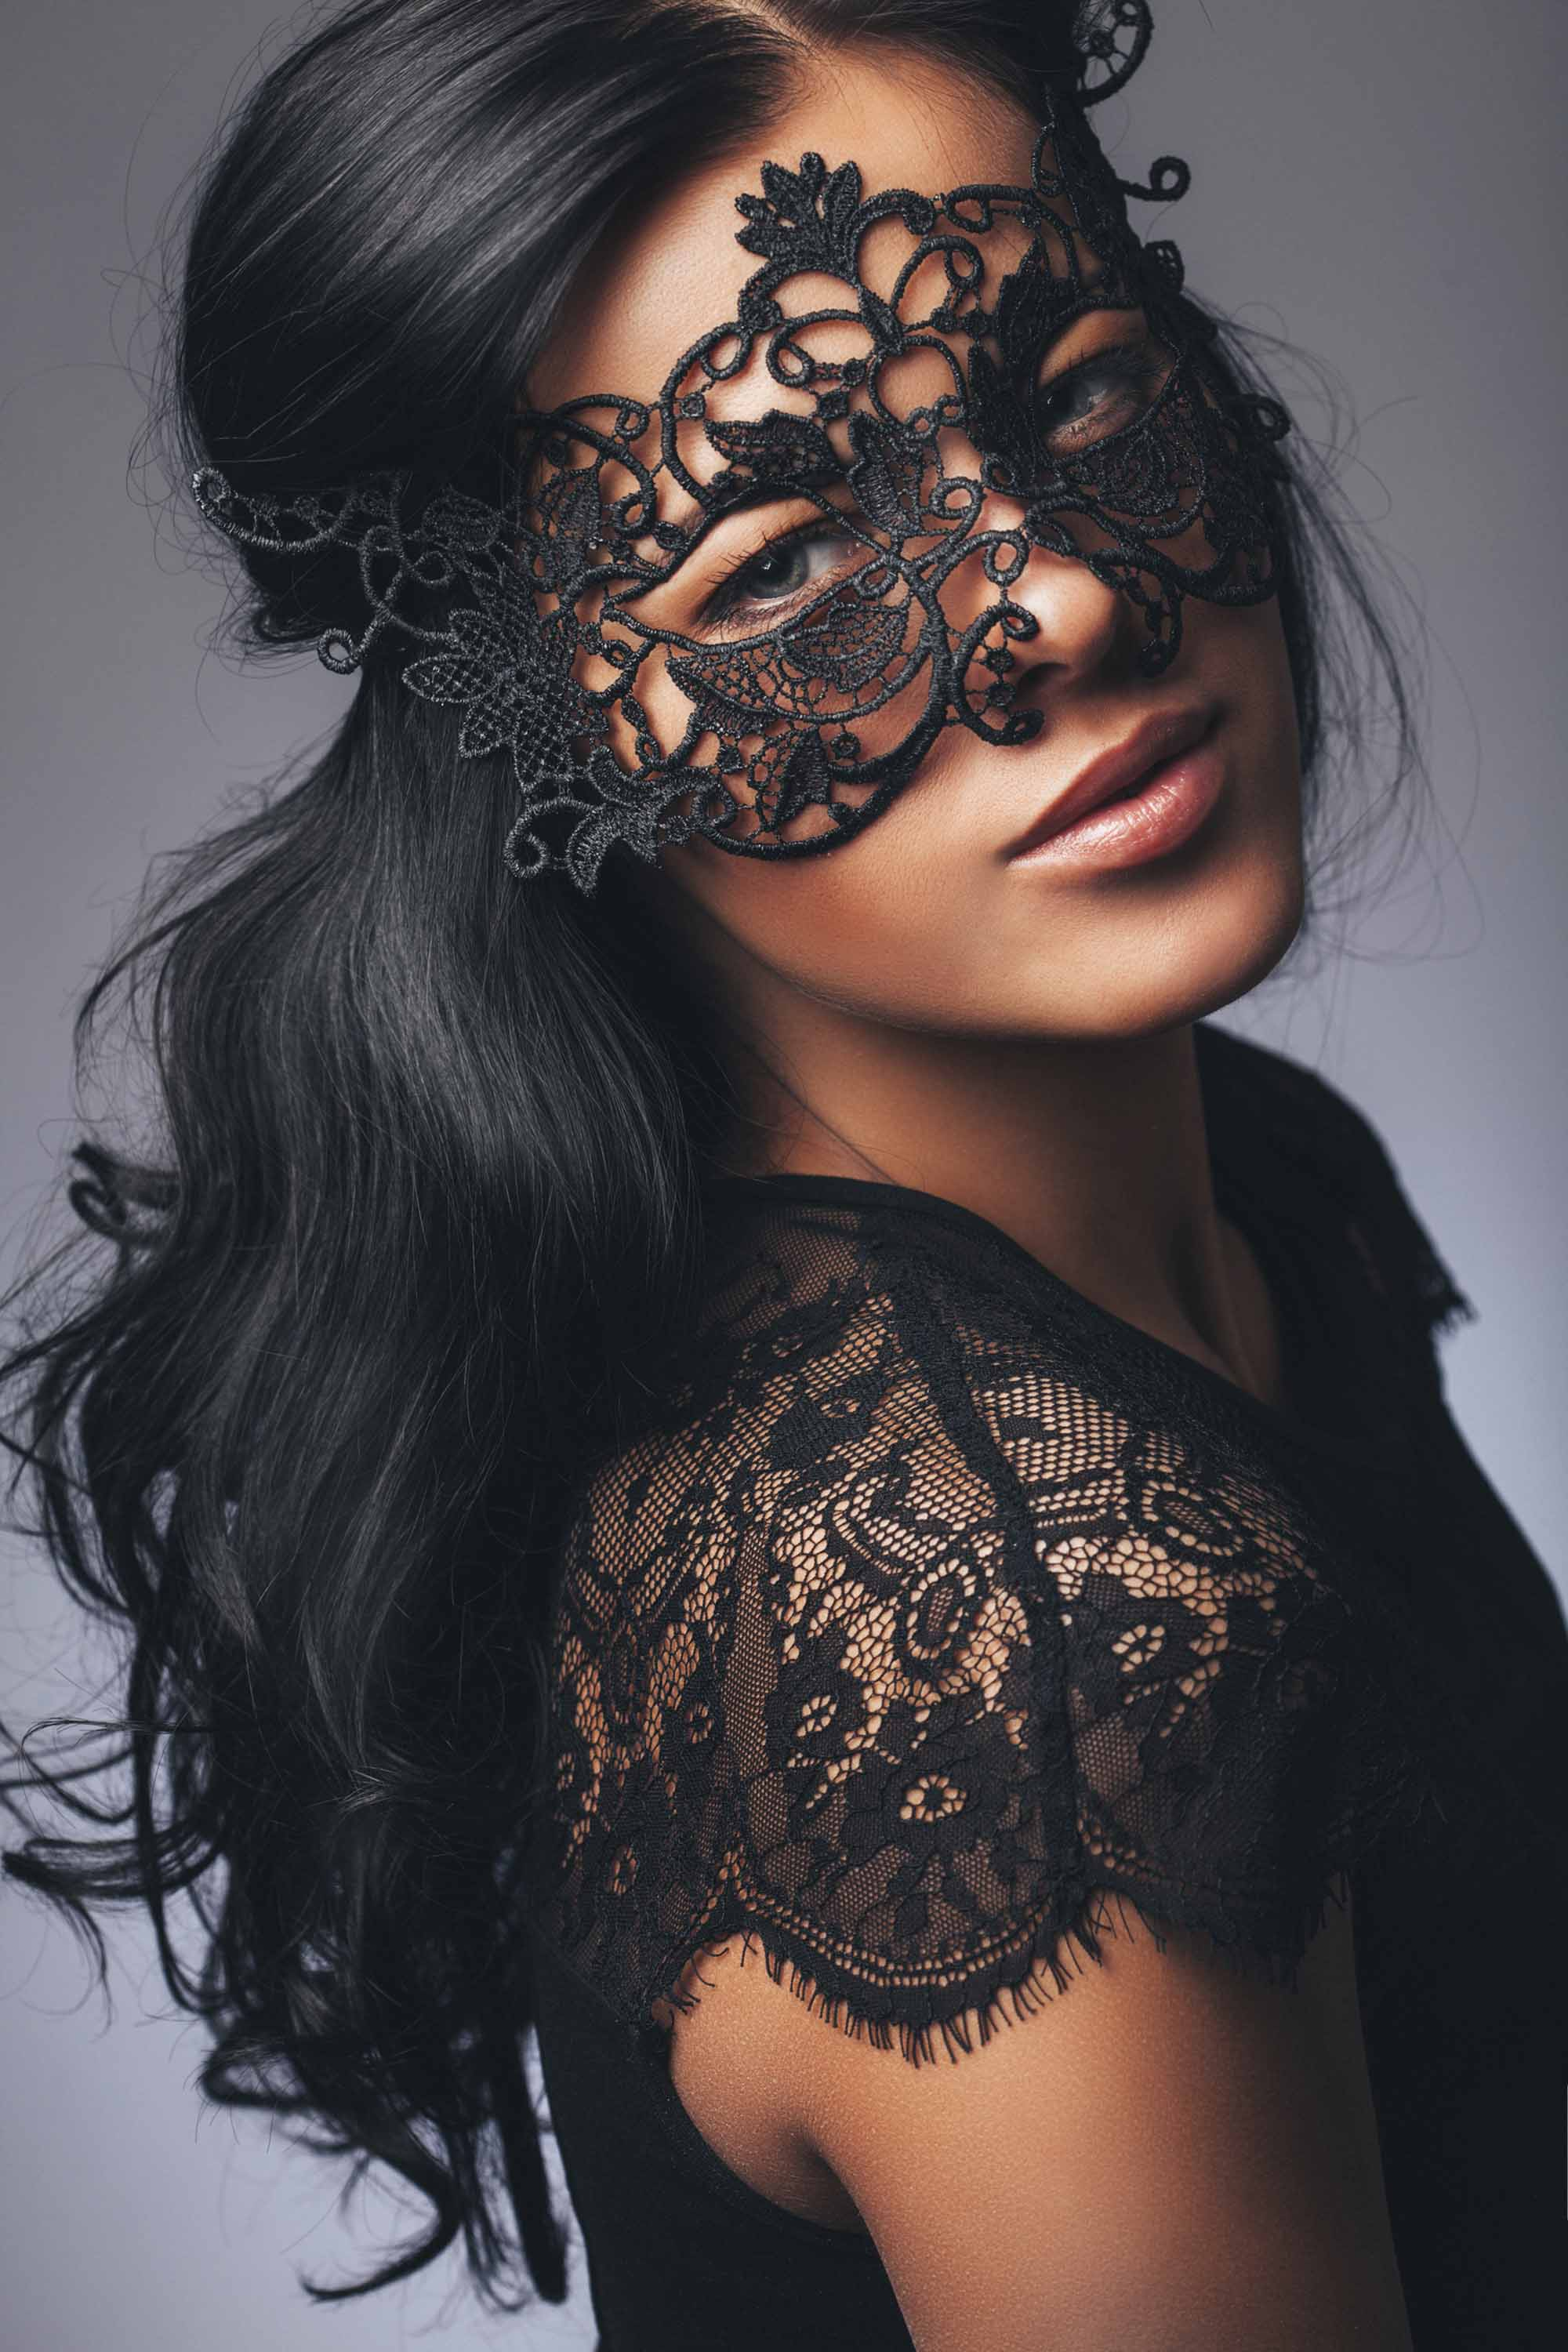 woman with long dark hair in waves wearing a masquerade mask and black lace top